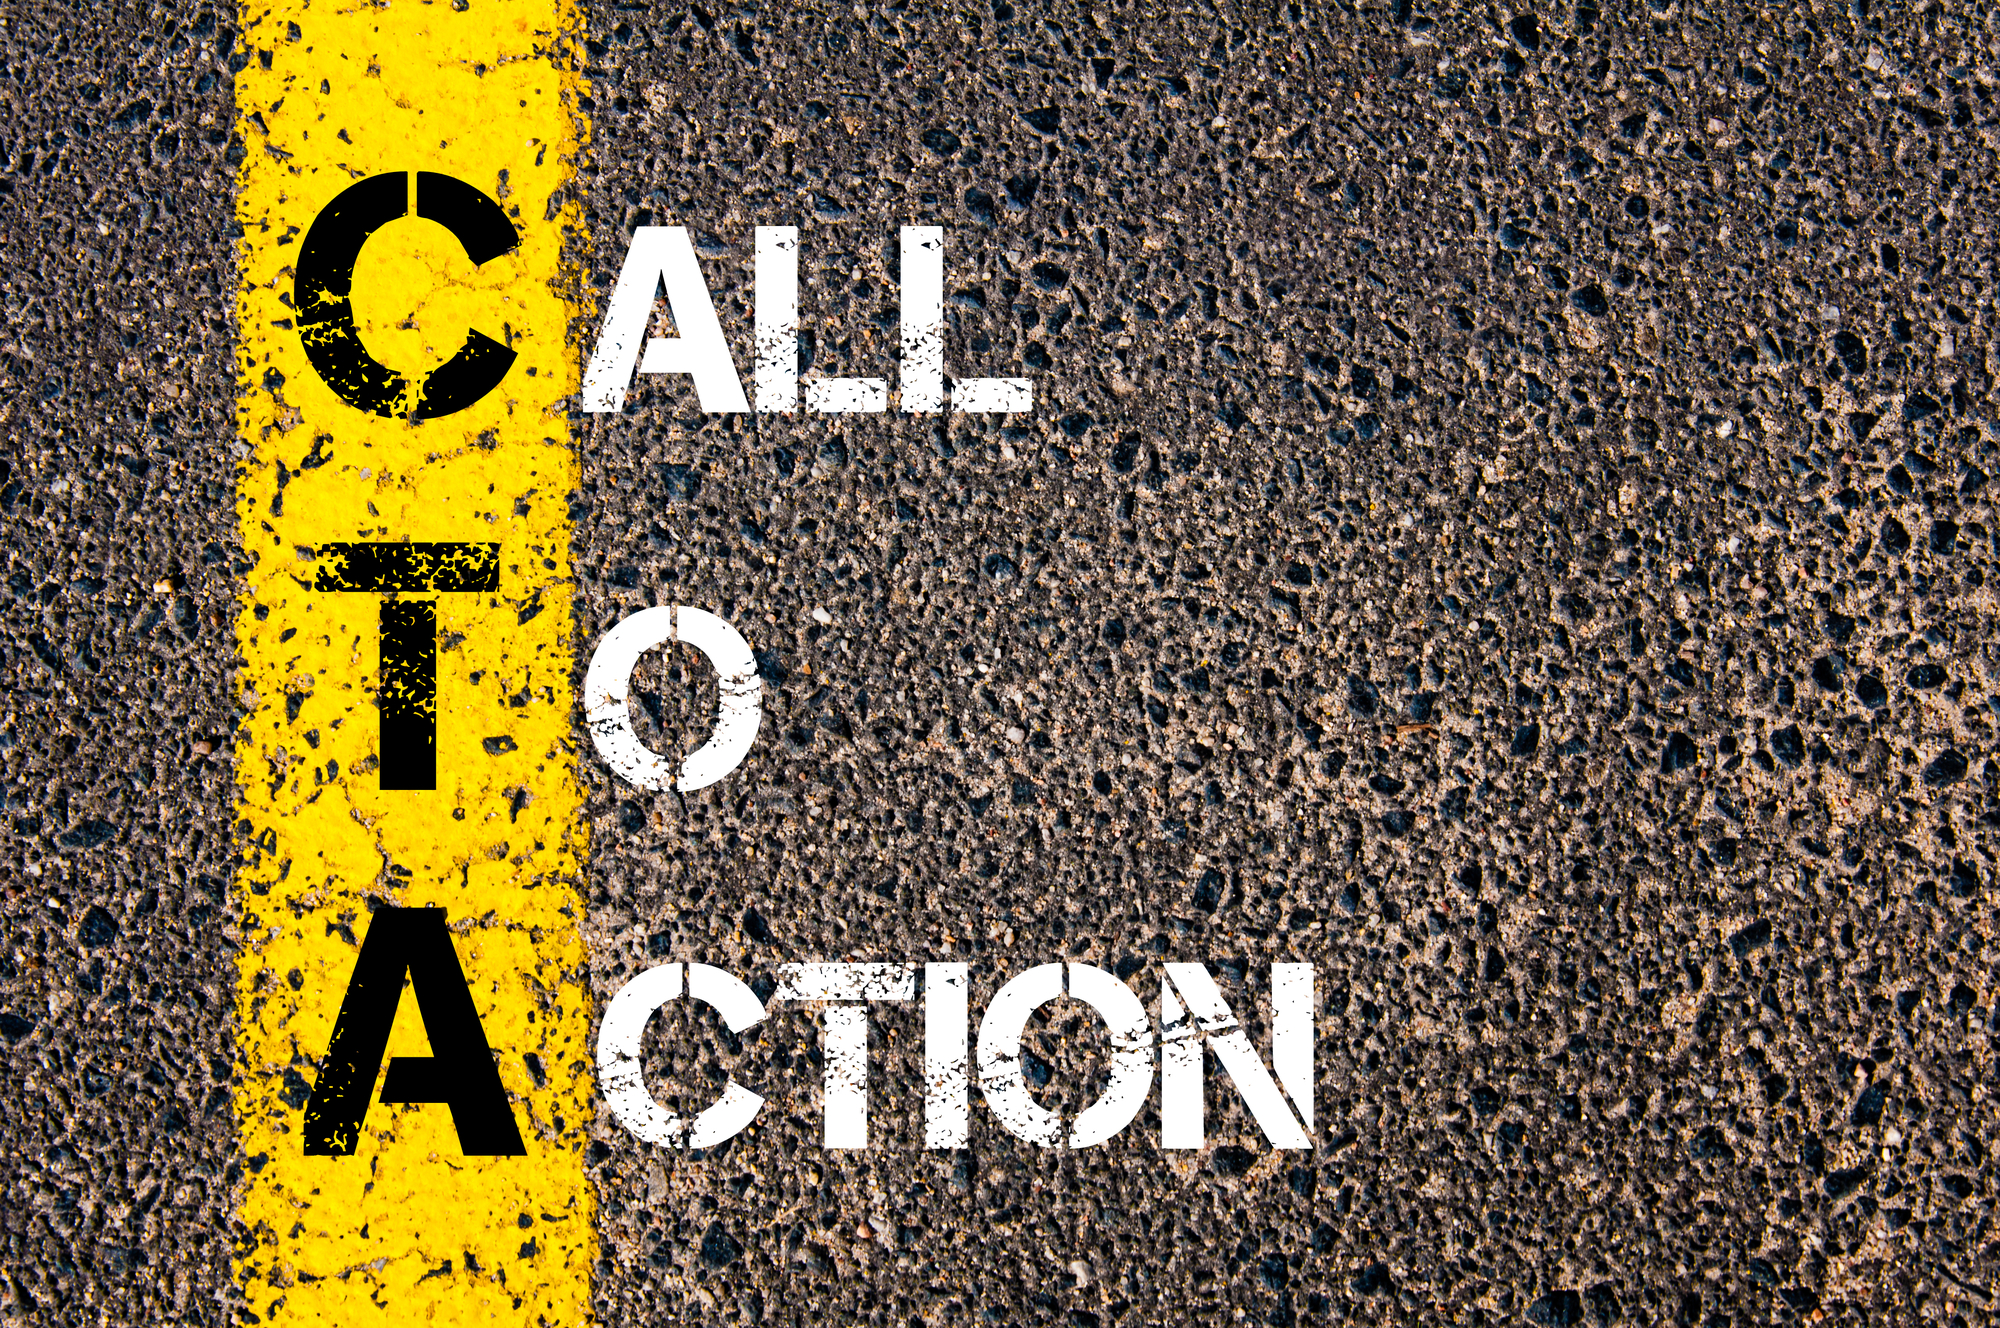 Depositphotos_70892087_l-2015CTA call to action printed on a yellow road stripe